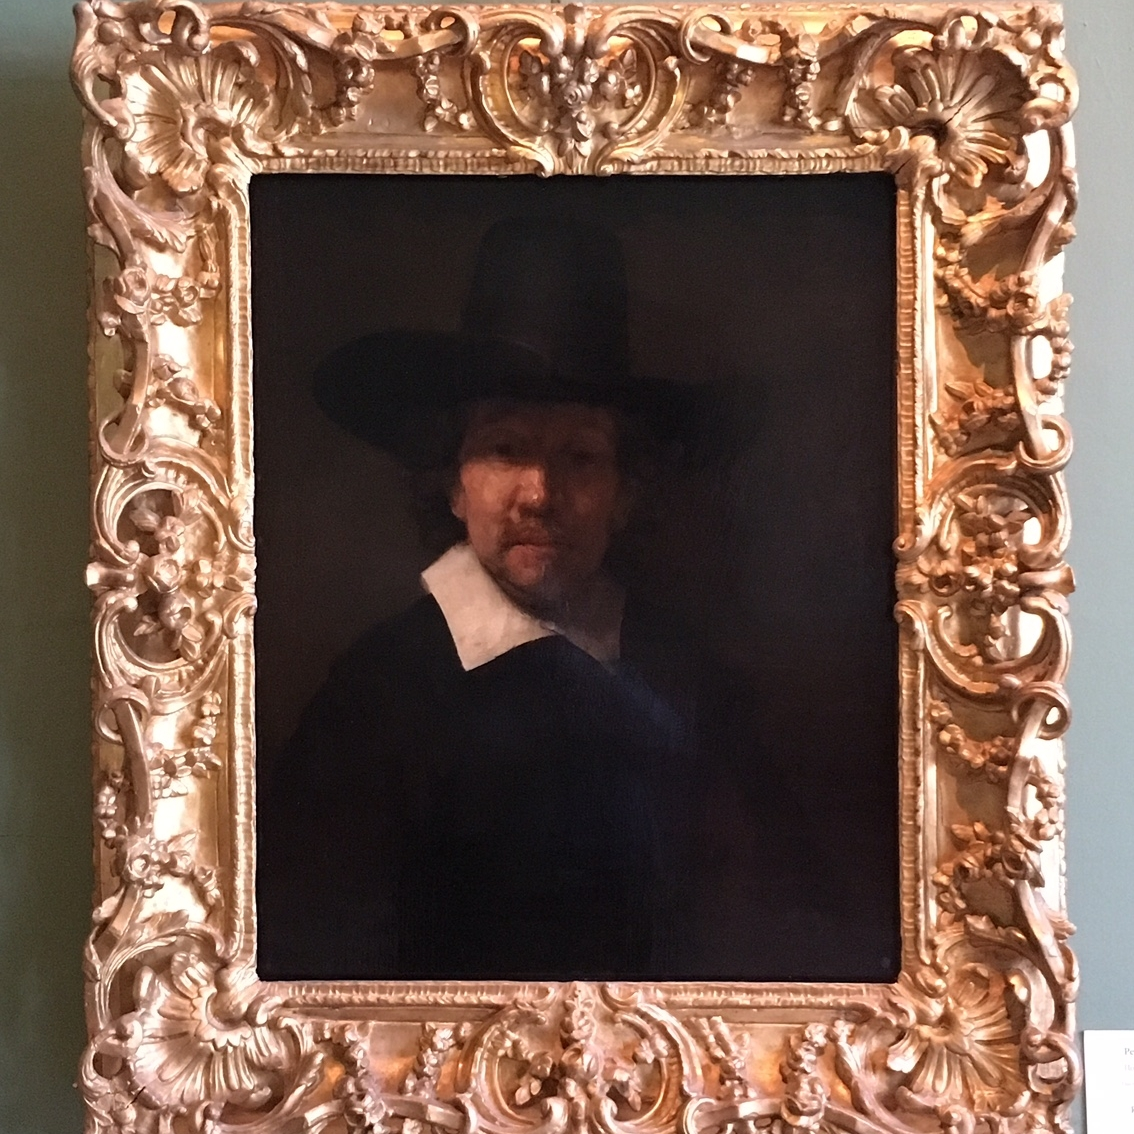 Rembrandt at the Hermitage, St Petersburg by The Doubtful Traveller